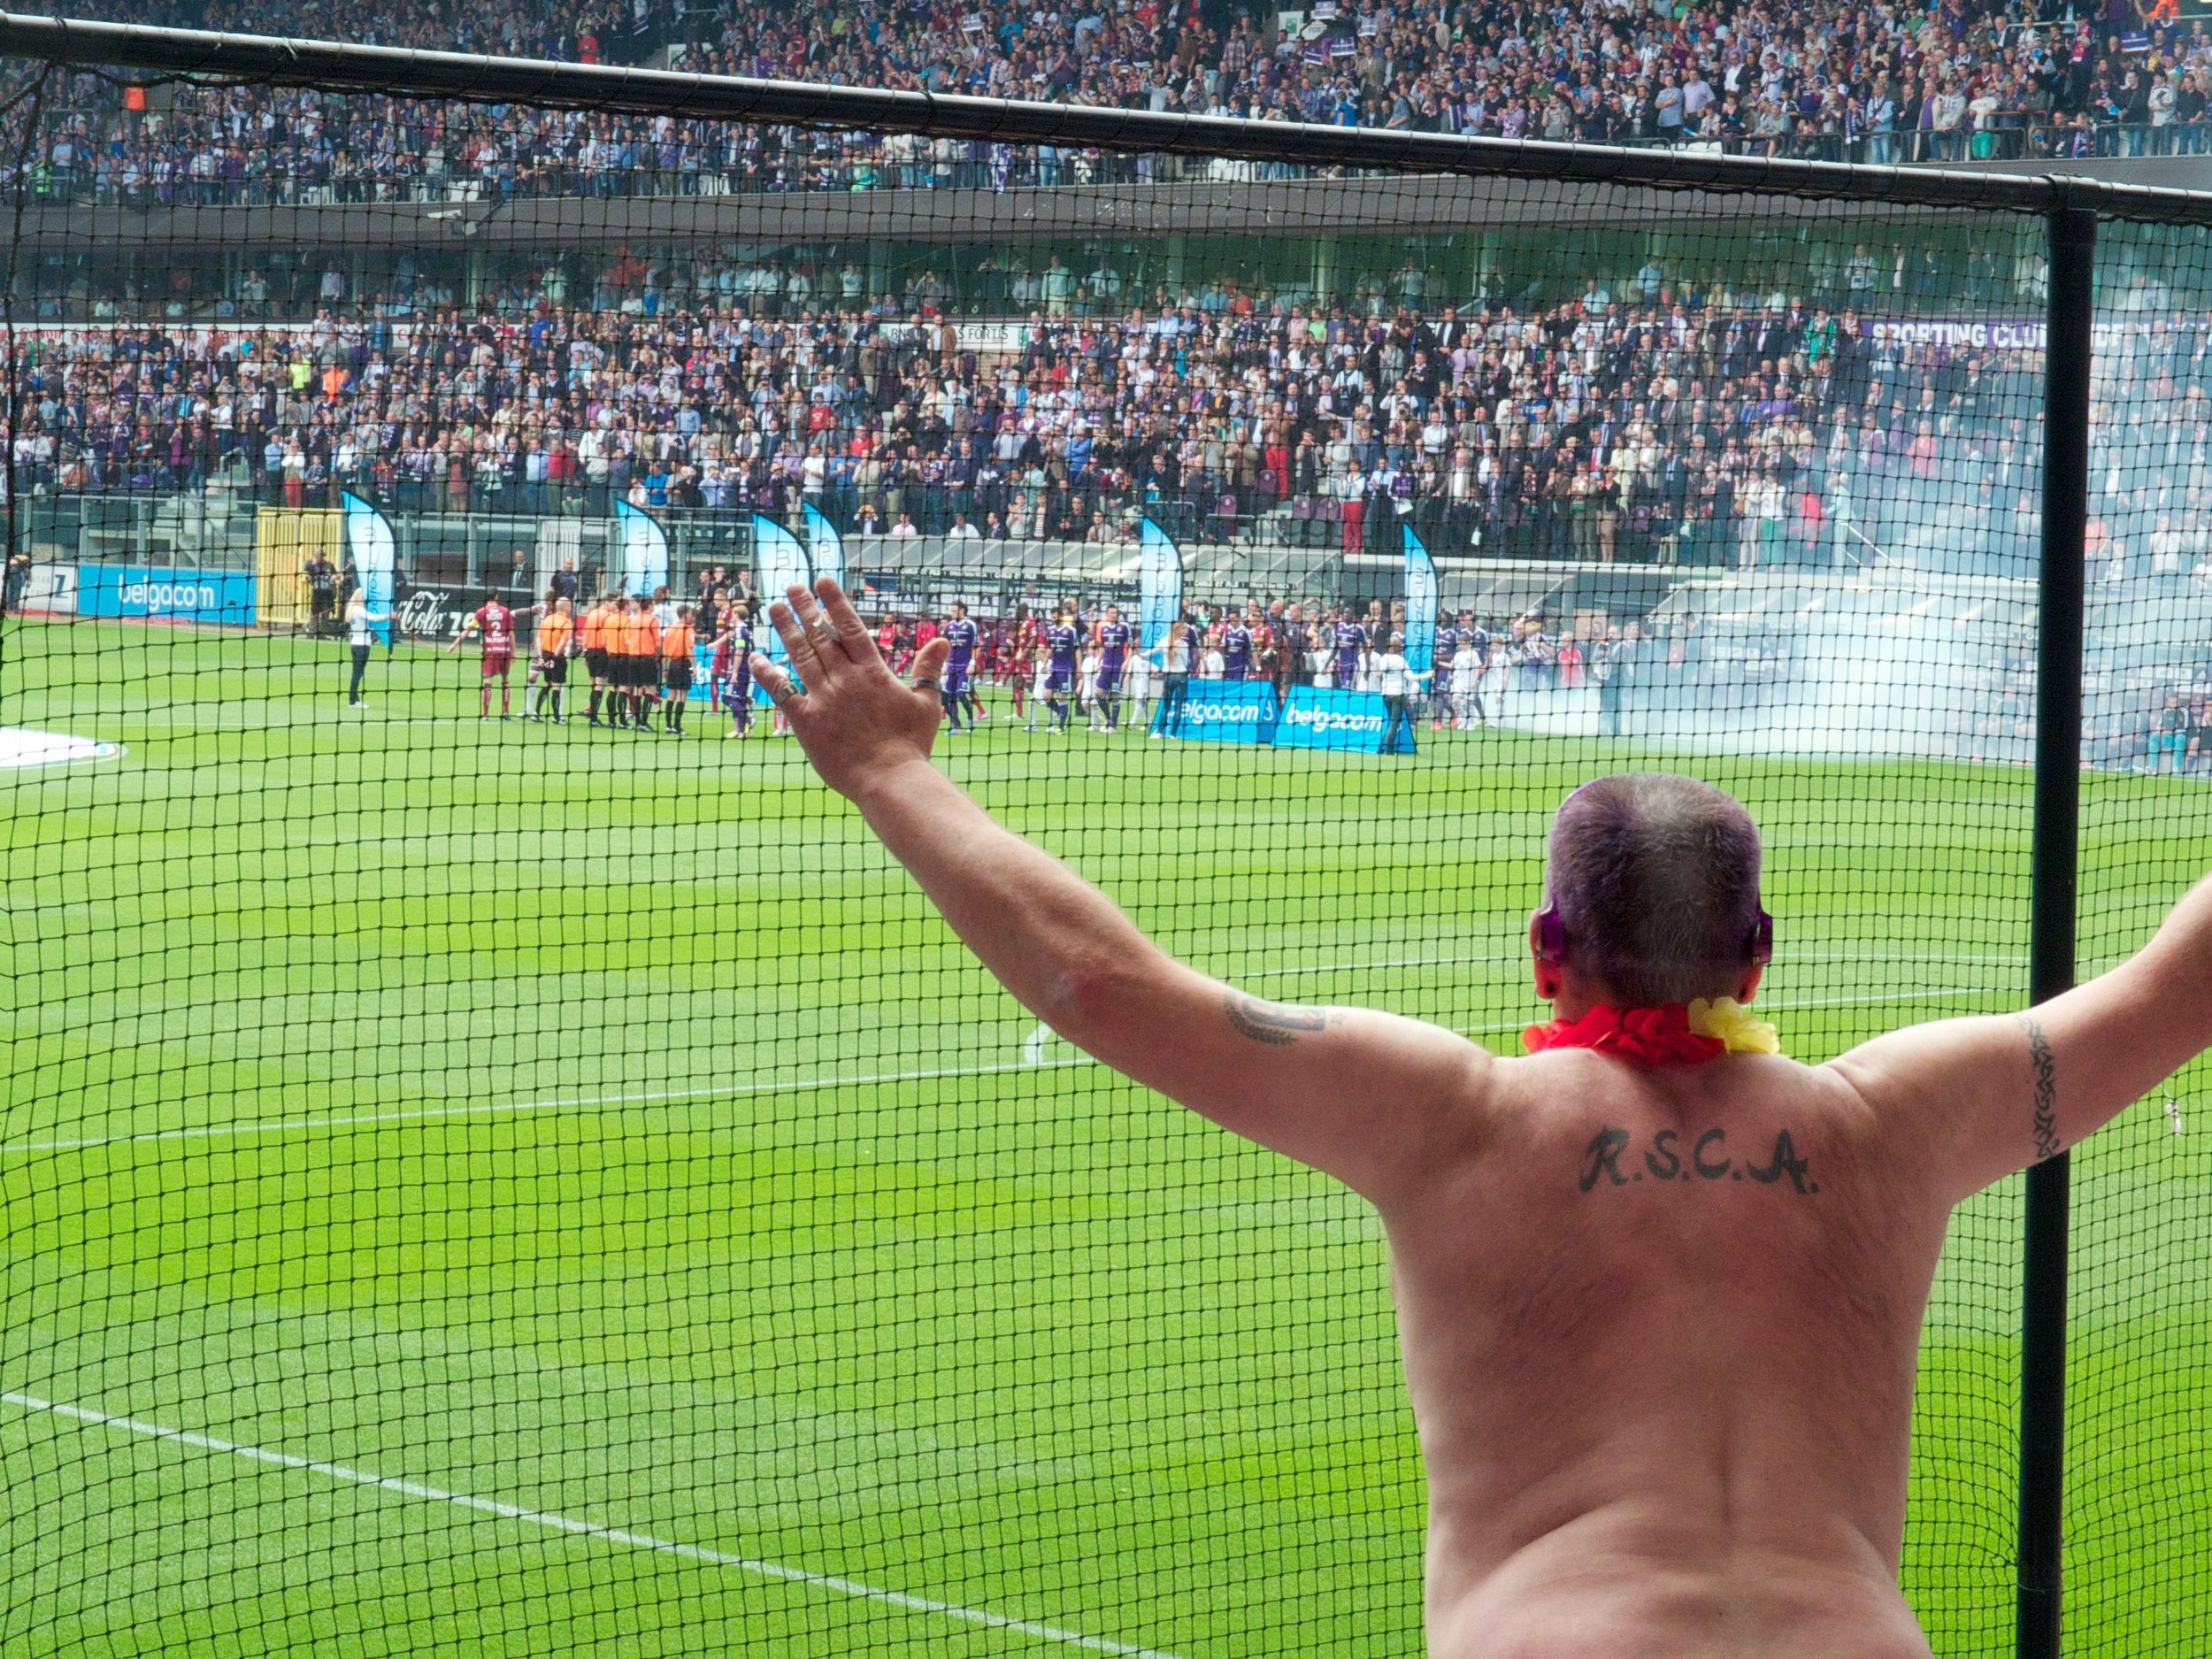 An Anderlecht fan cheers the team on from the stands as Anderlecht clinch their 32nd league title at home to Zulte Waregem in 2013. Image credit:    Sander Spek   /   Flickr